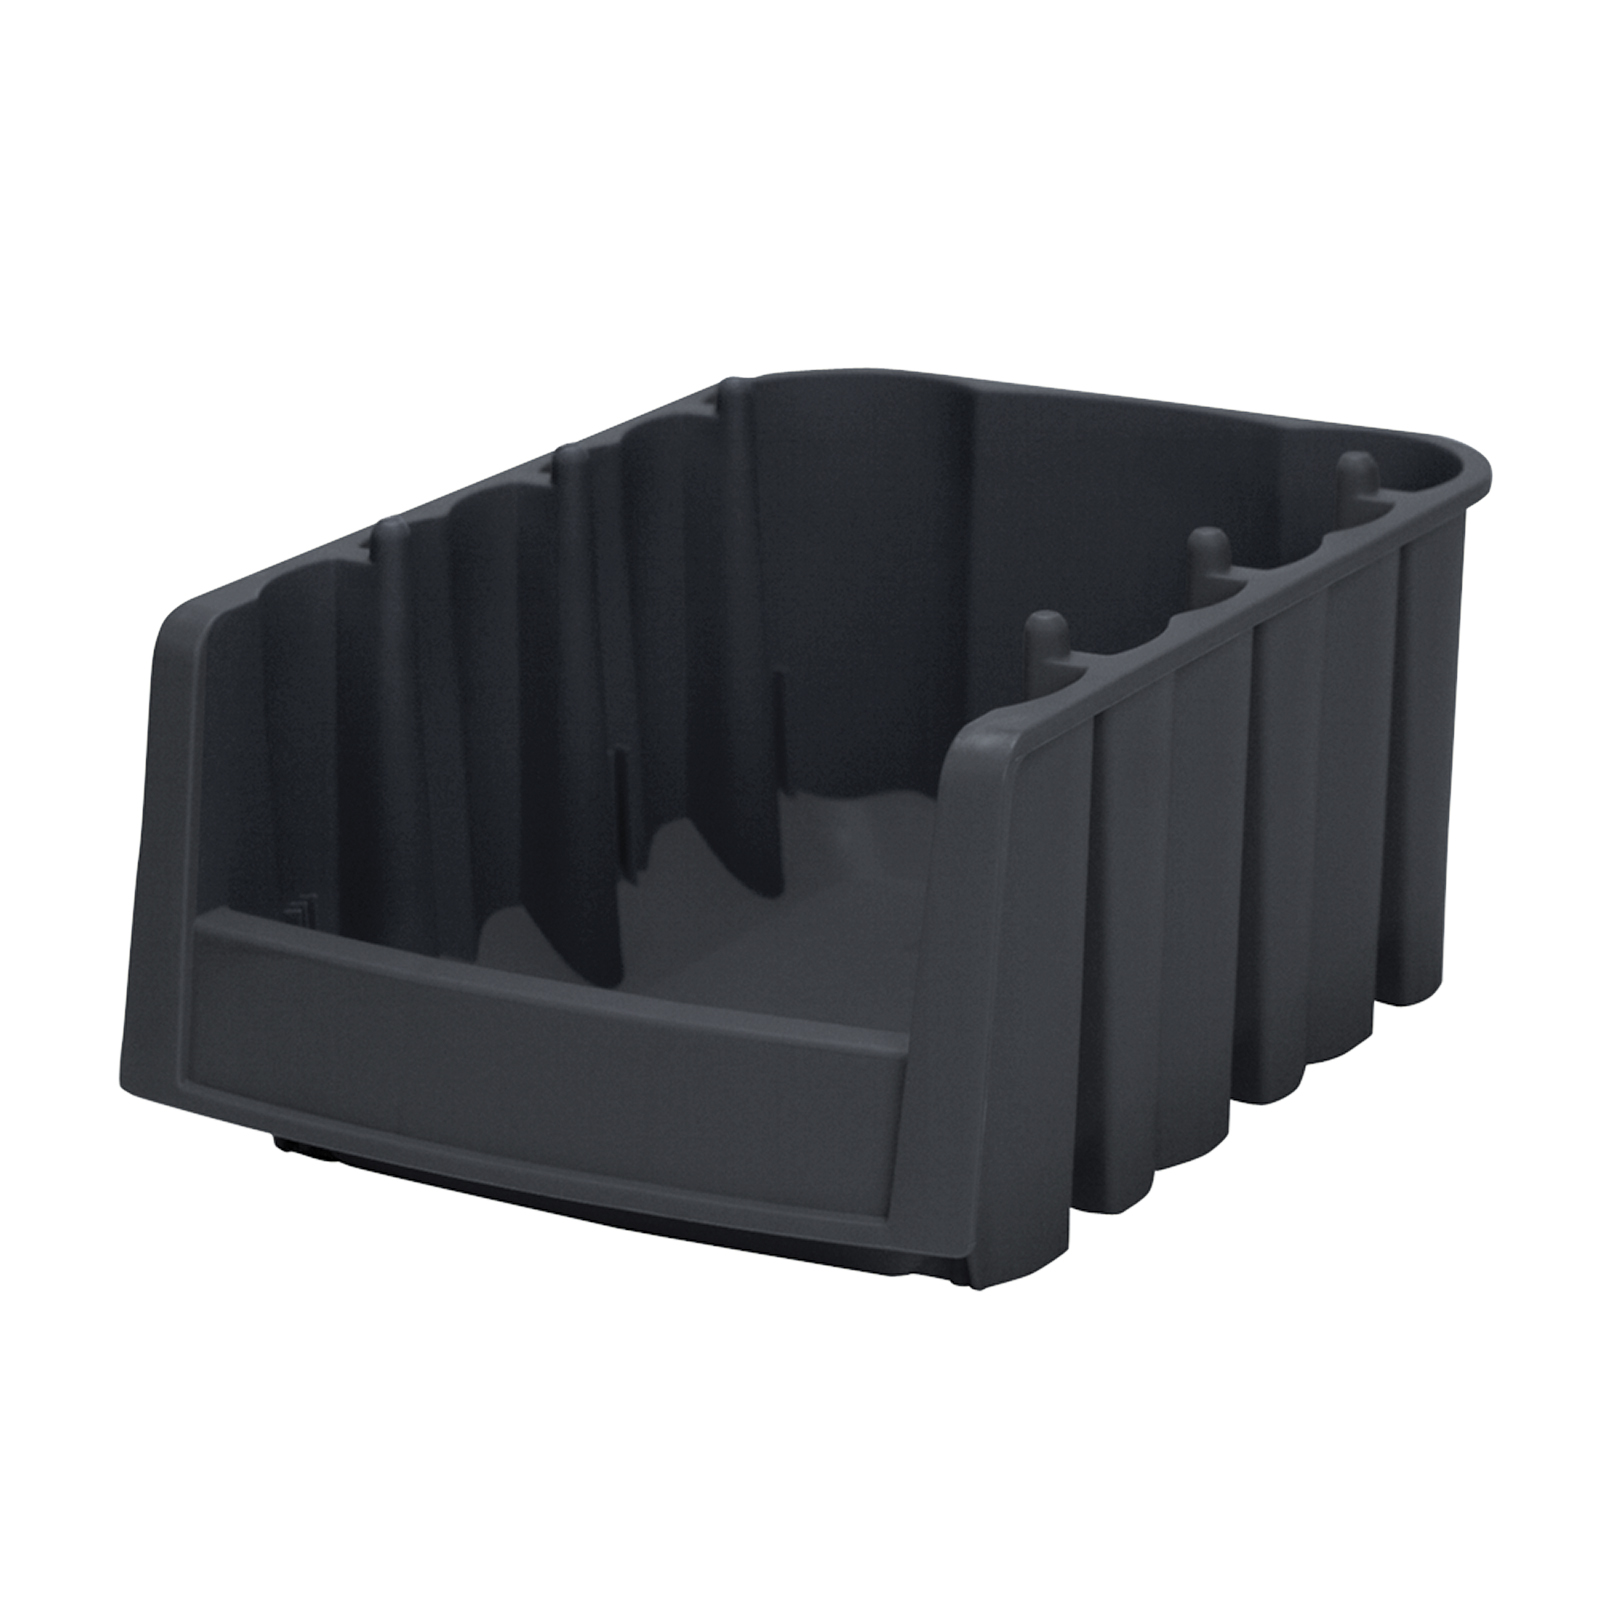 Economy Shelf Bin 17-7/8 x 6-5/8 x 7, Black (30776BLACK).  This item sold in carton quantities of 10.